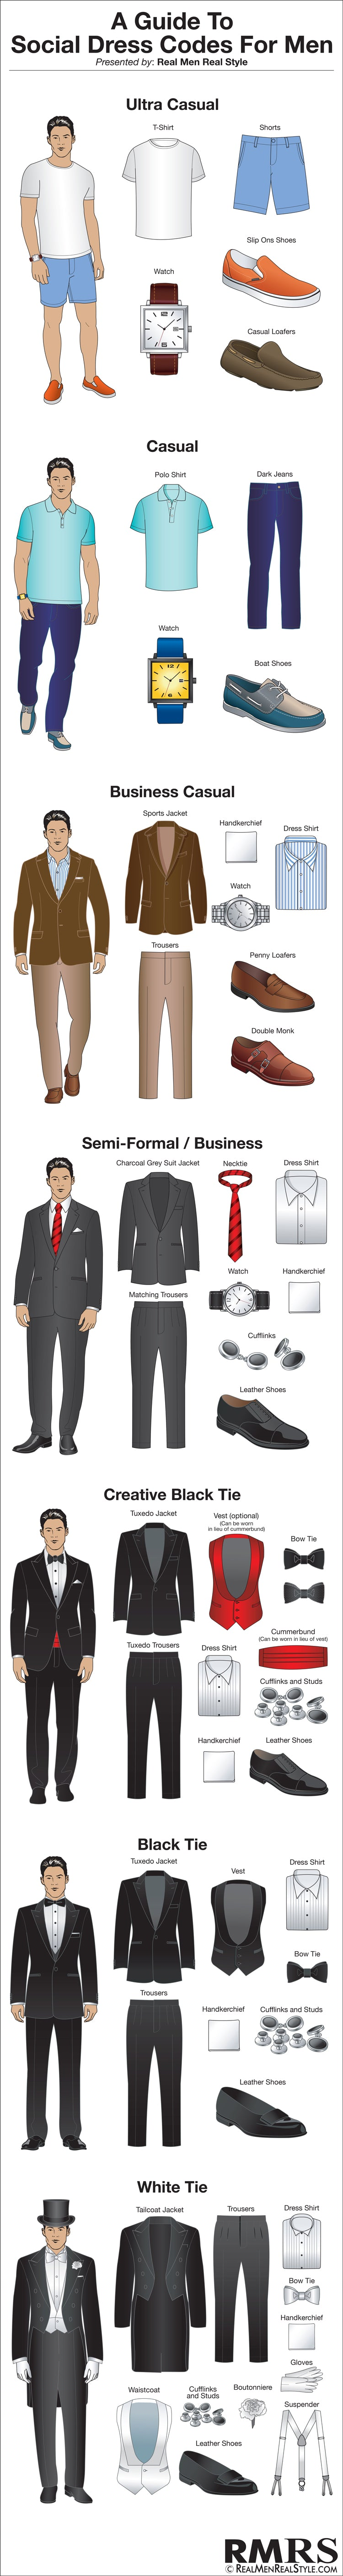 A Guide To Social Dress Codes For Men